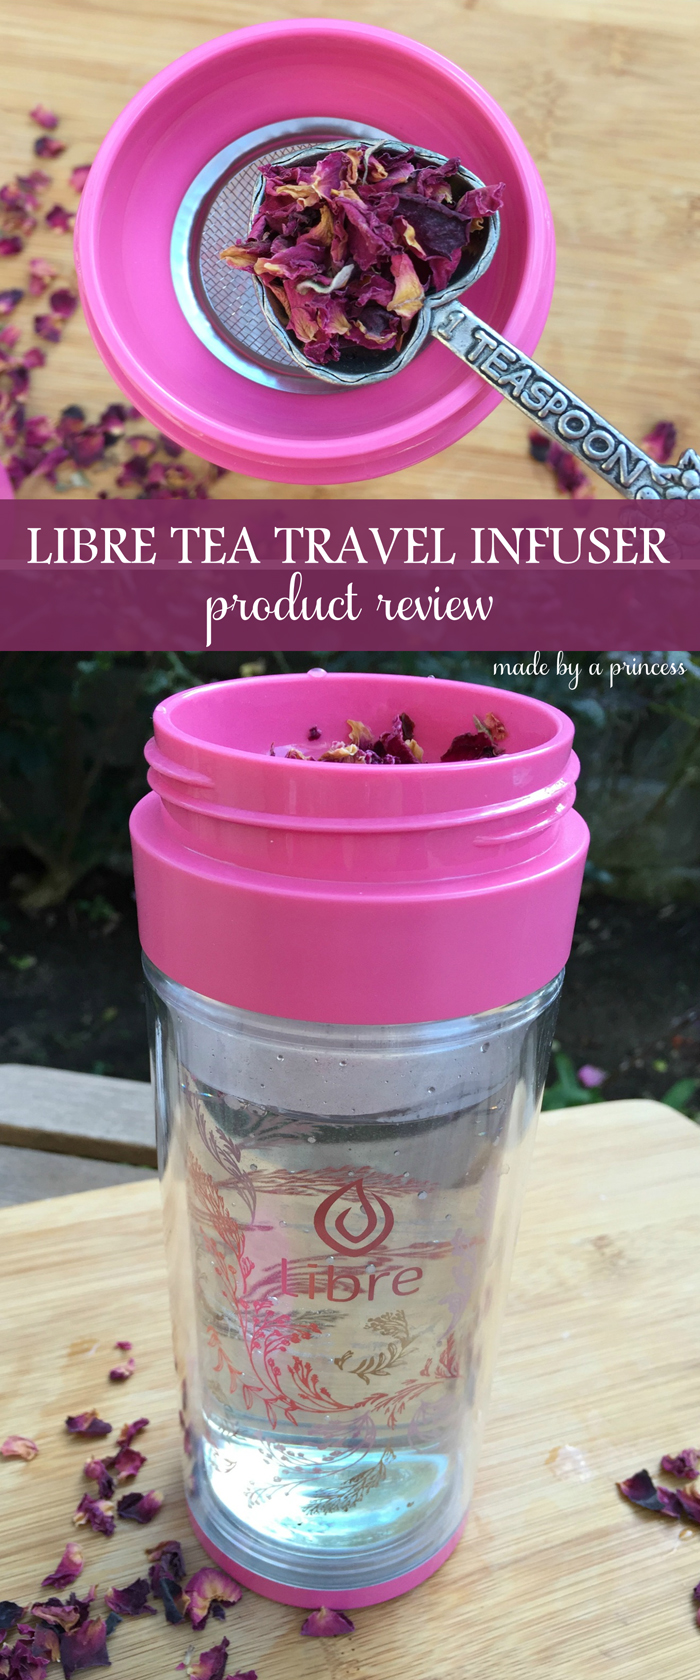 libre tea travel infuser review